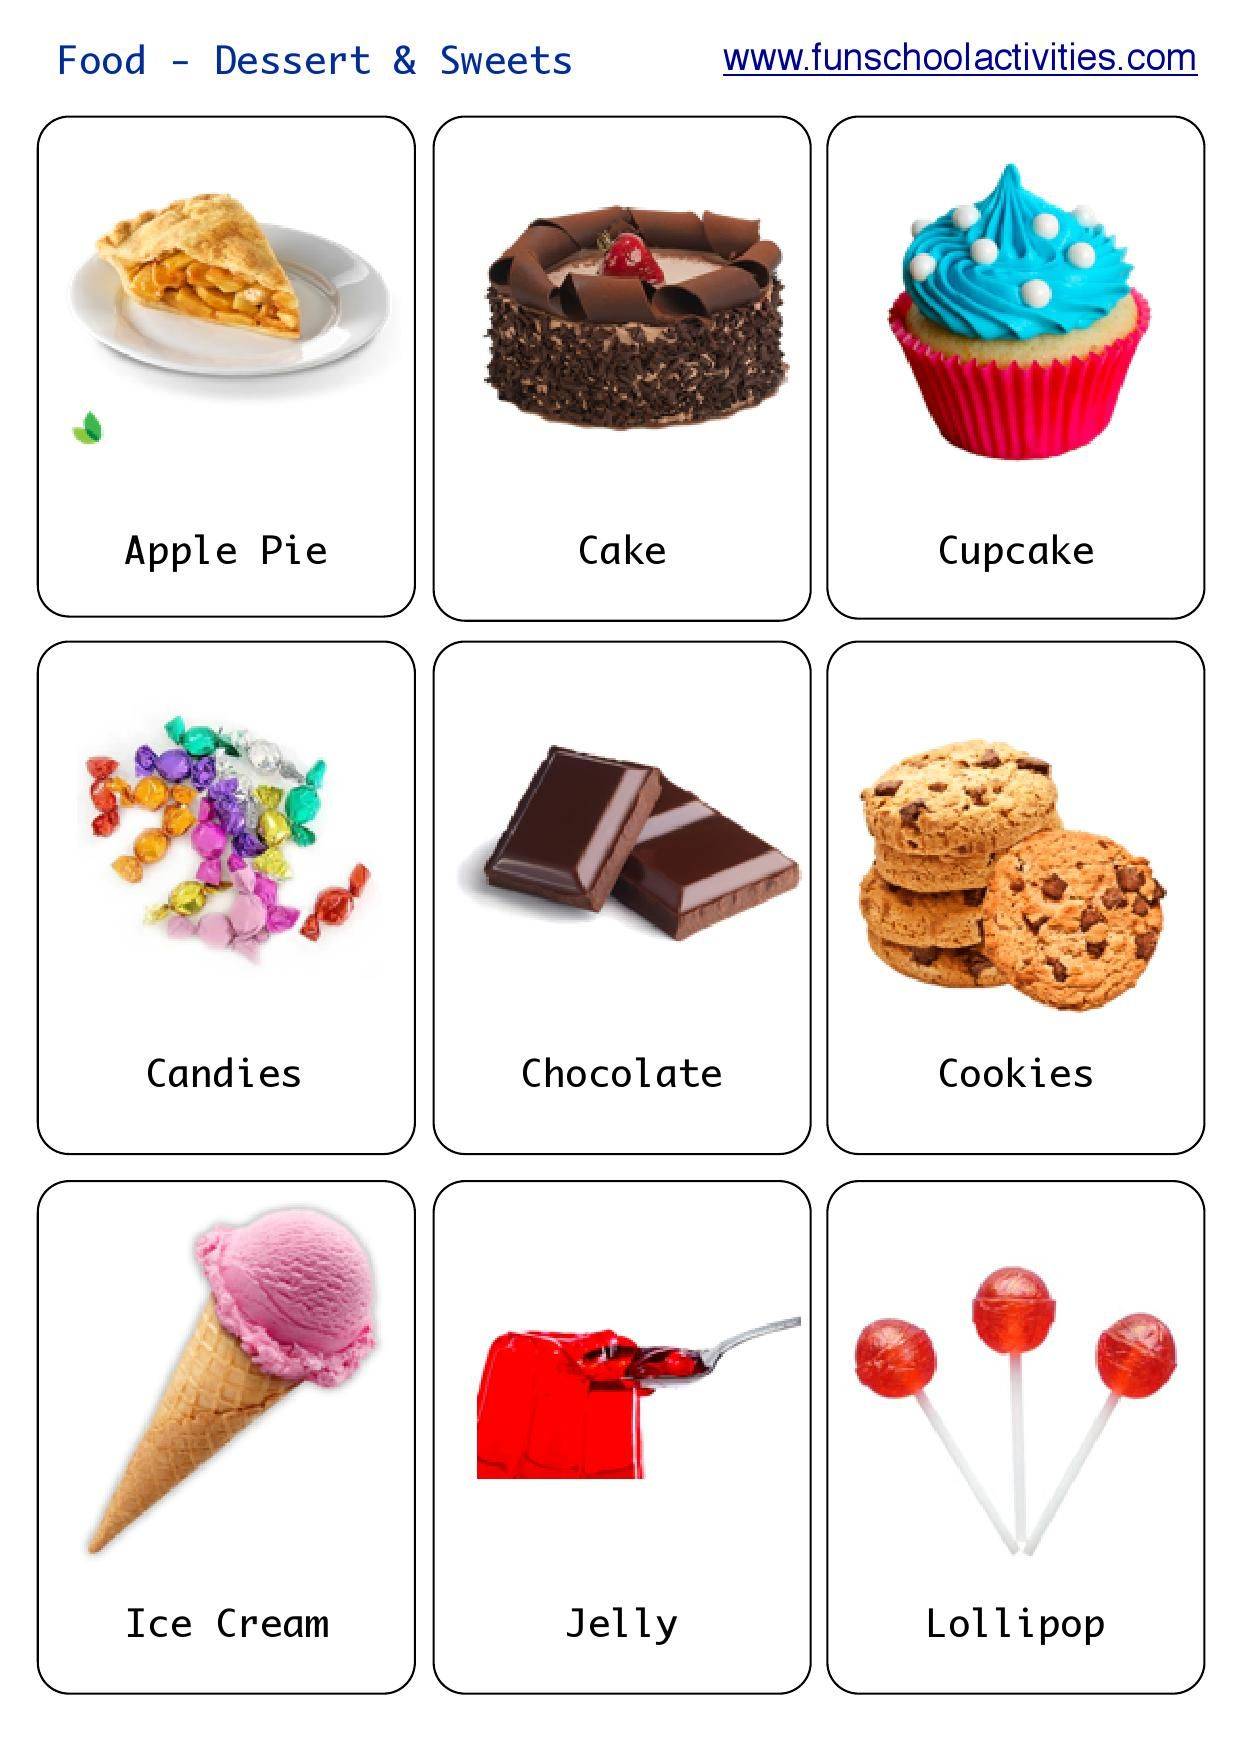 Printable Desserts And Sweets Flashcards